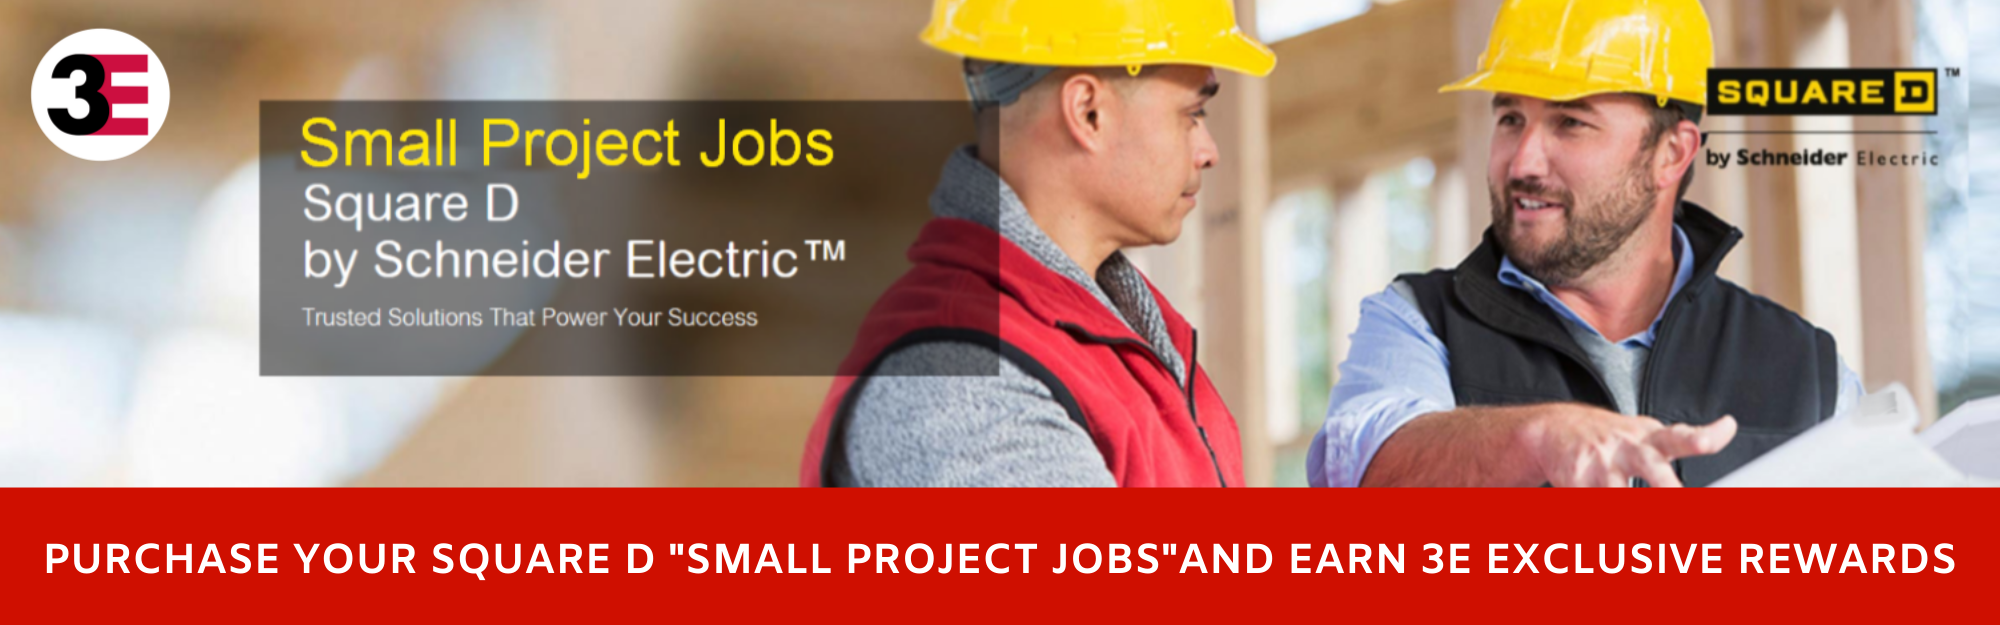 Small Project Jobs